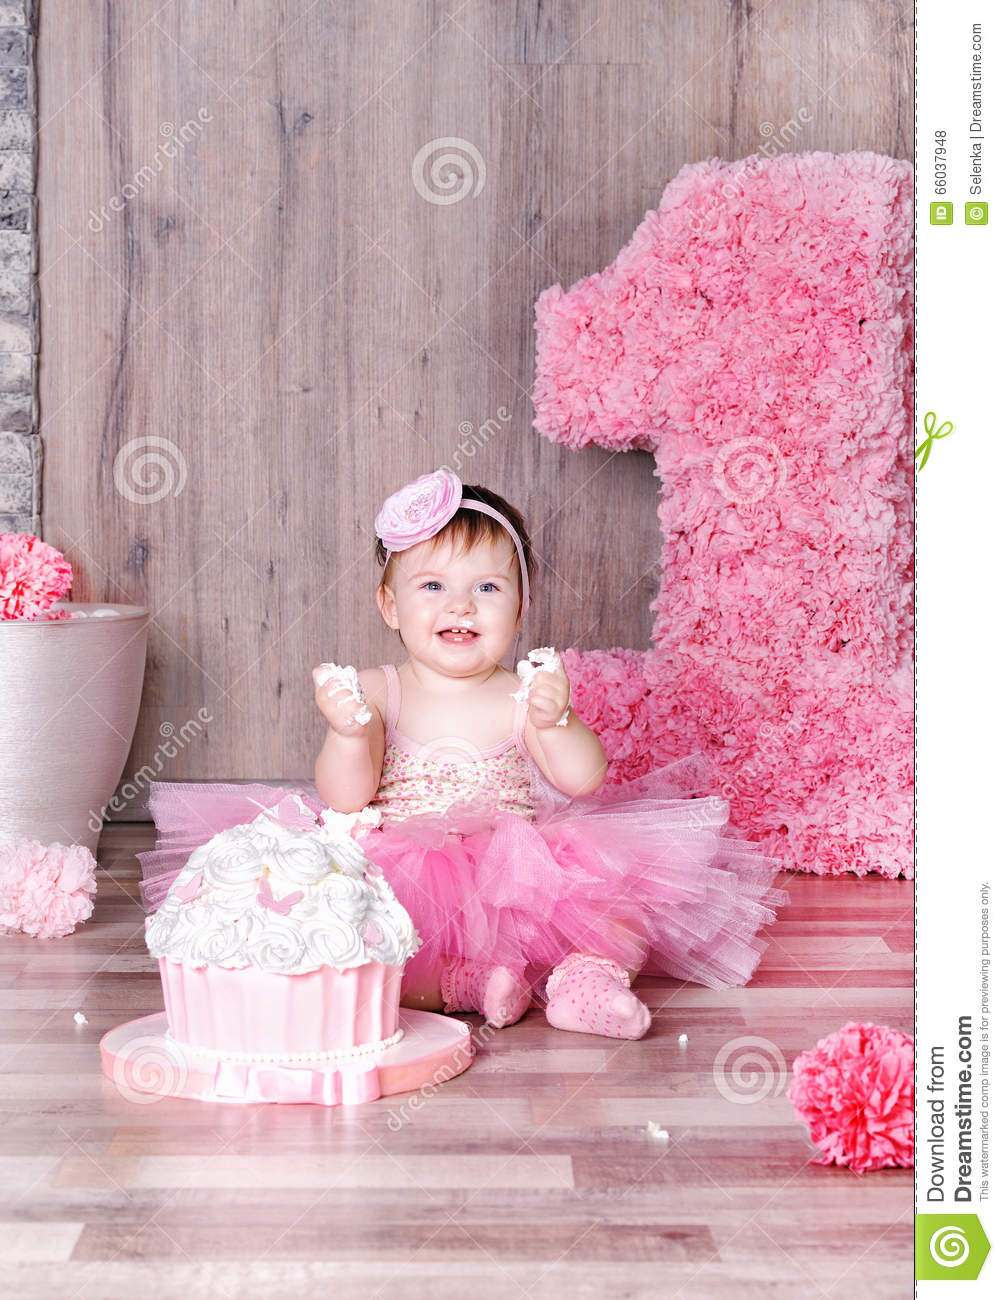 Cute Baby Girl Eating First Birthday Cake Stock Photo Image